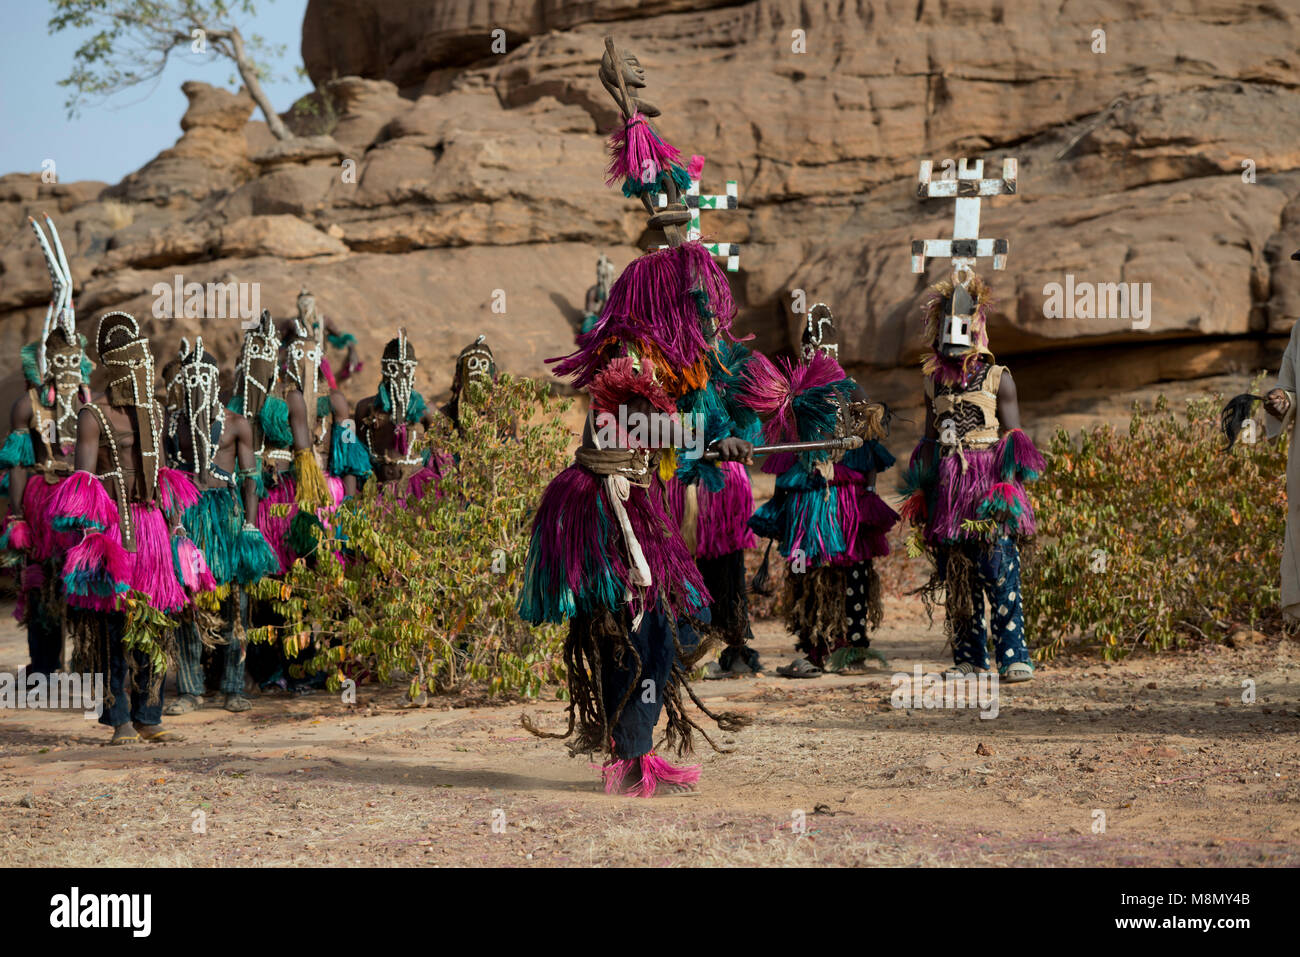 A Dogon masked dancer shaking a stick during a ritualistic tribal dance. Dogon country, Mali, West Africa. - Stock Image